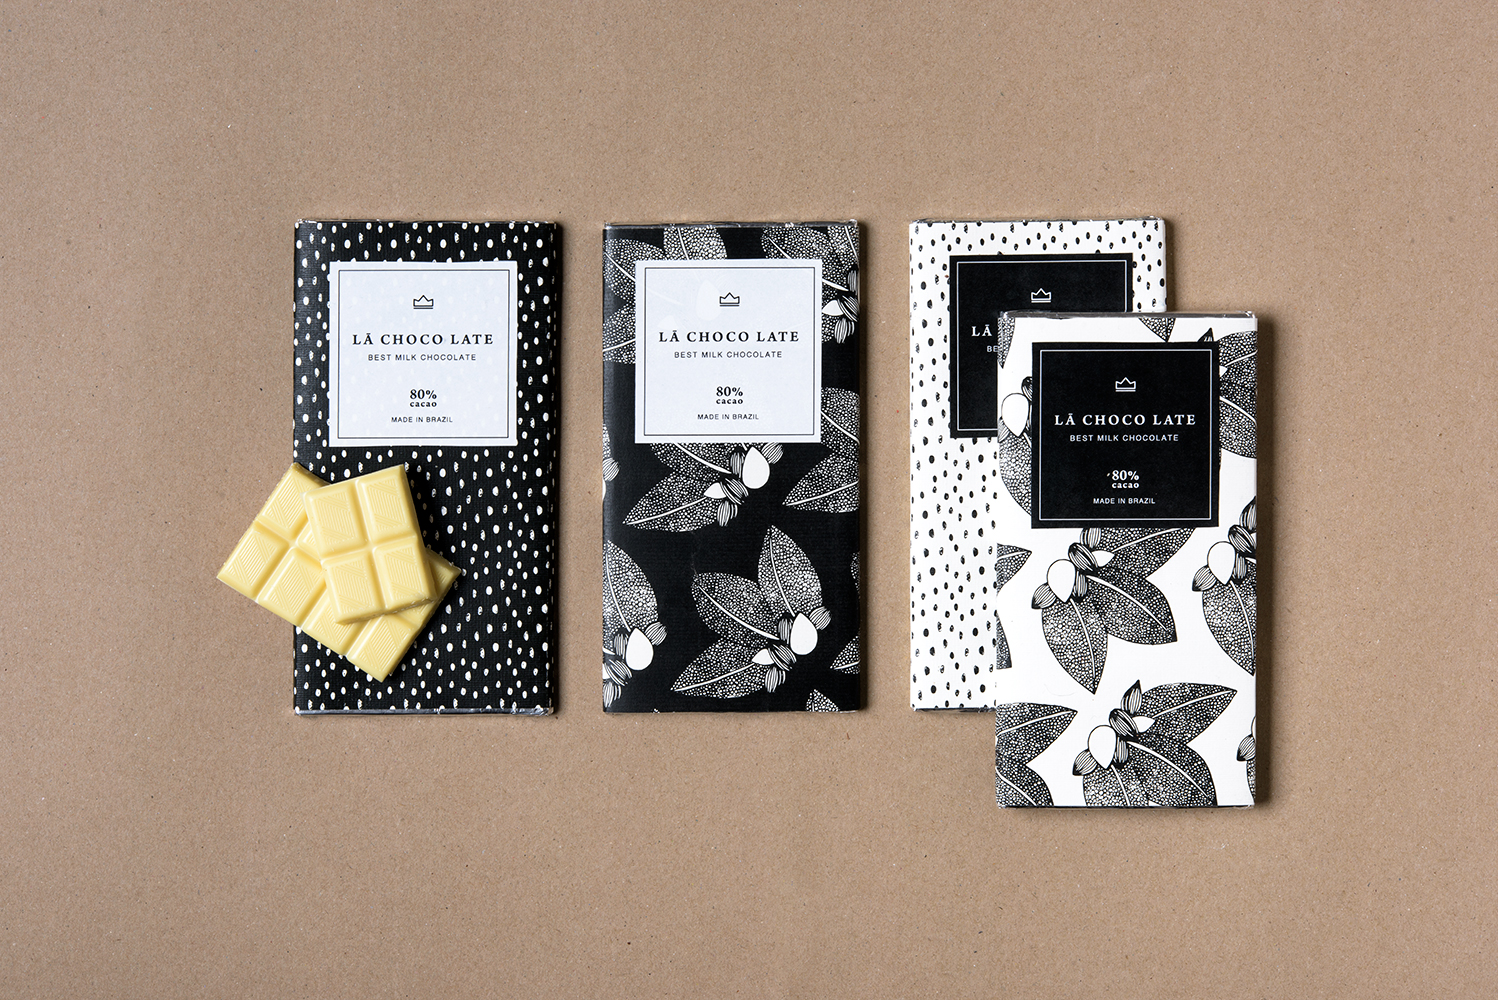 Printabella Creates Packaging Design with Hand Made Illustration for Chocolate Brand La Choco Late